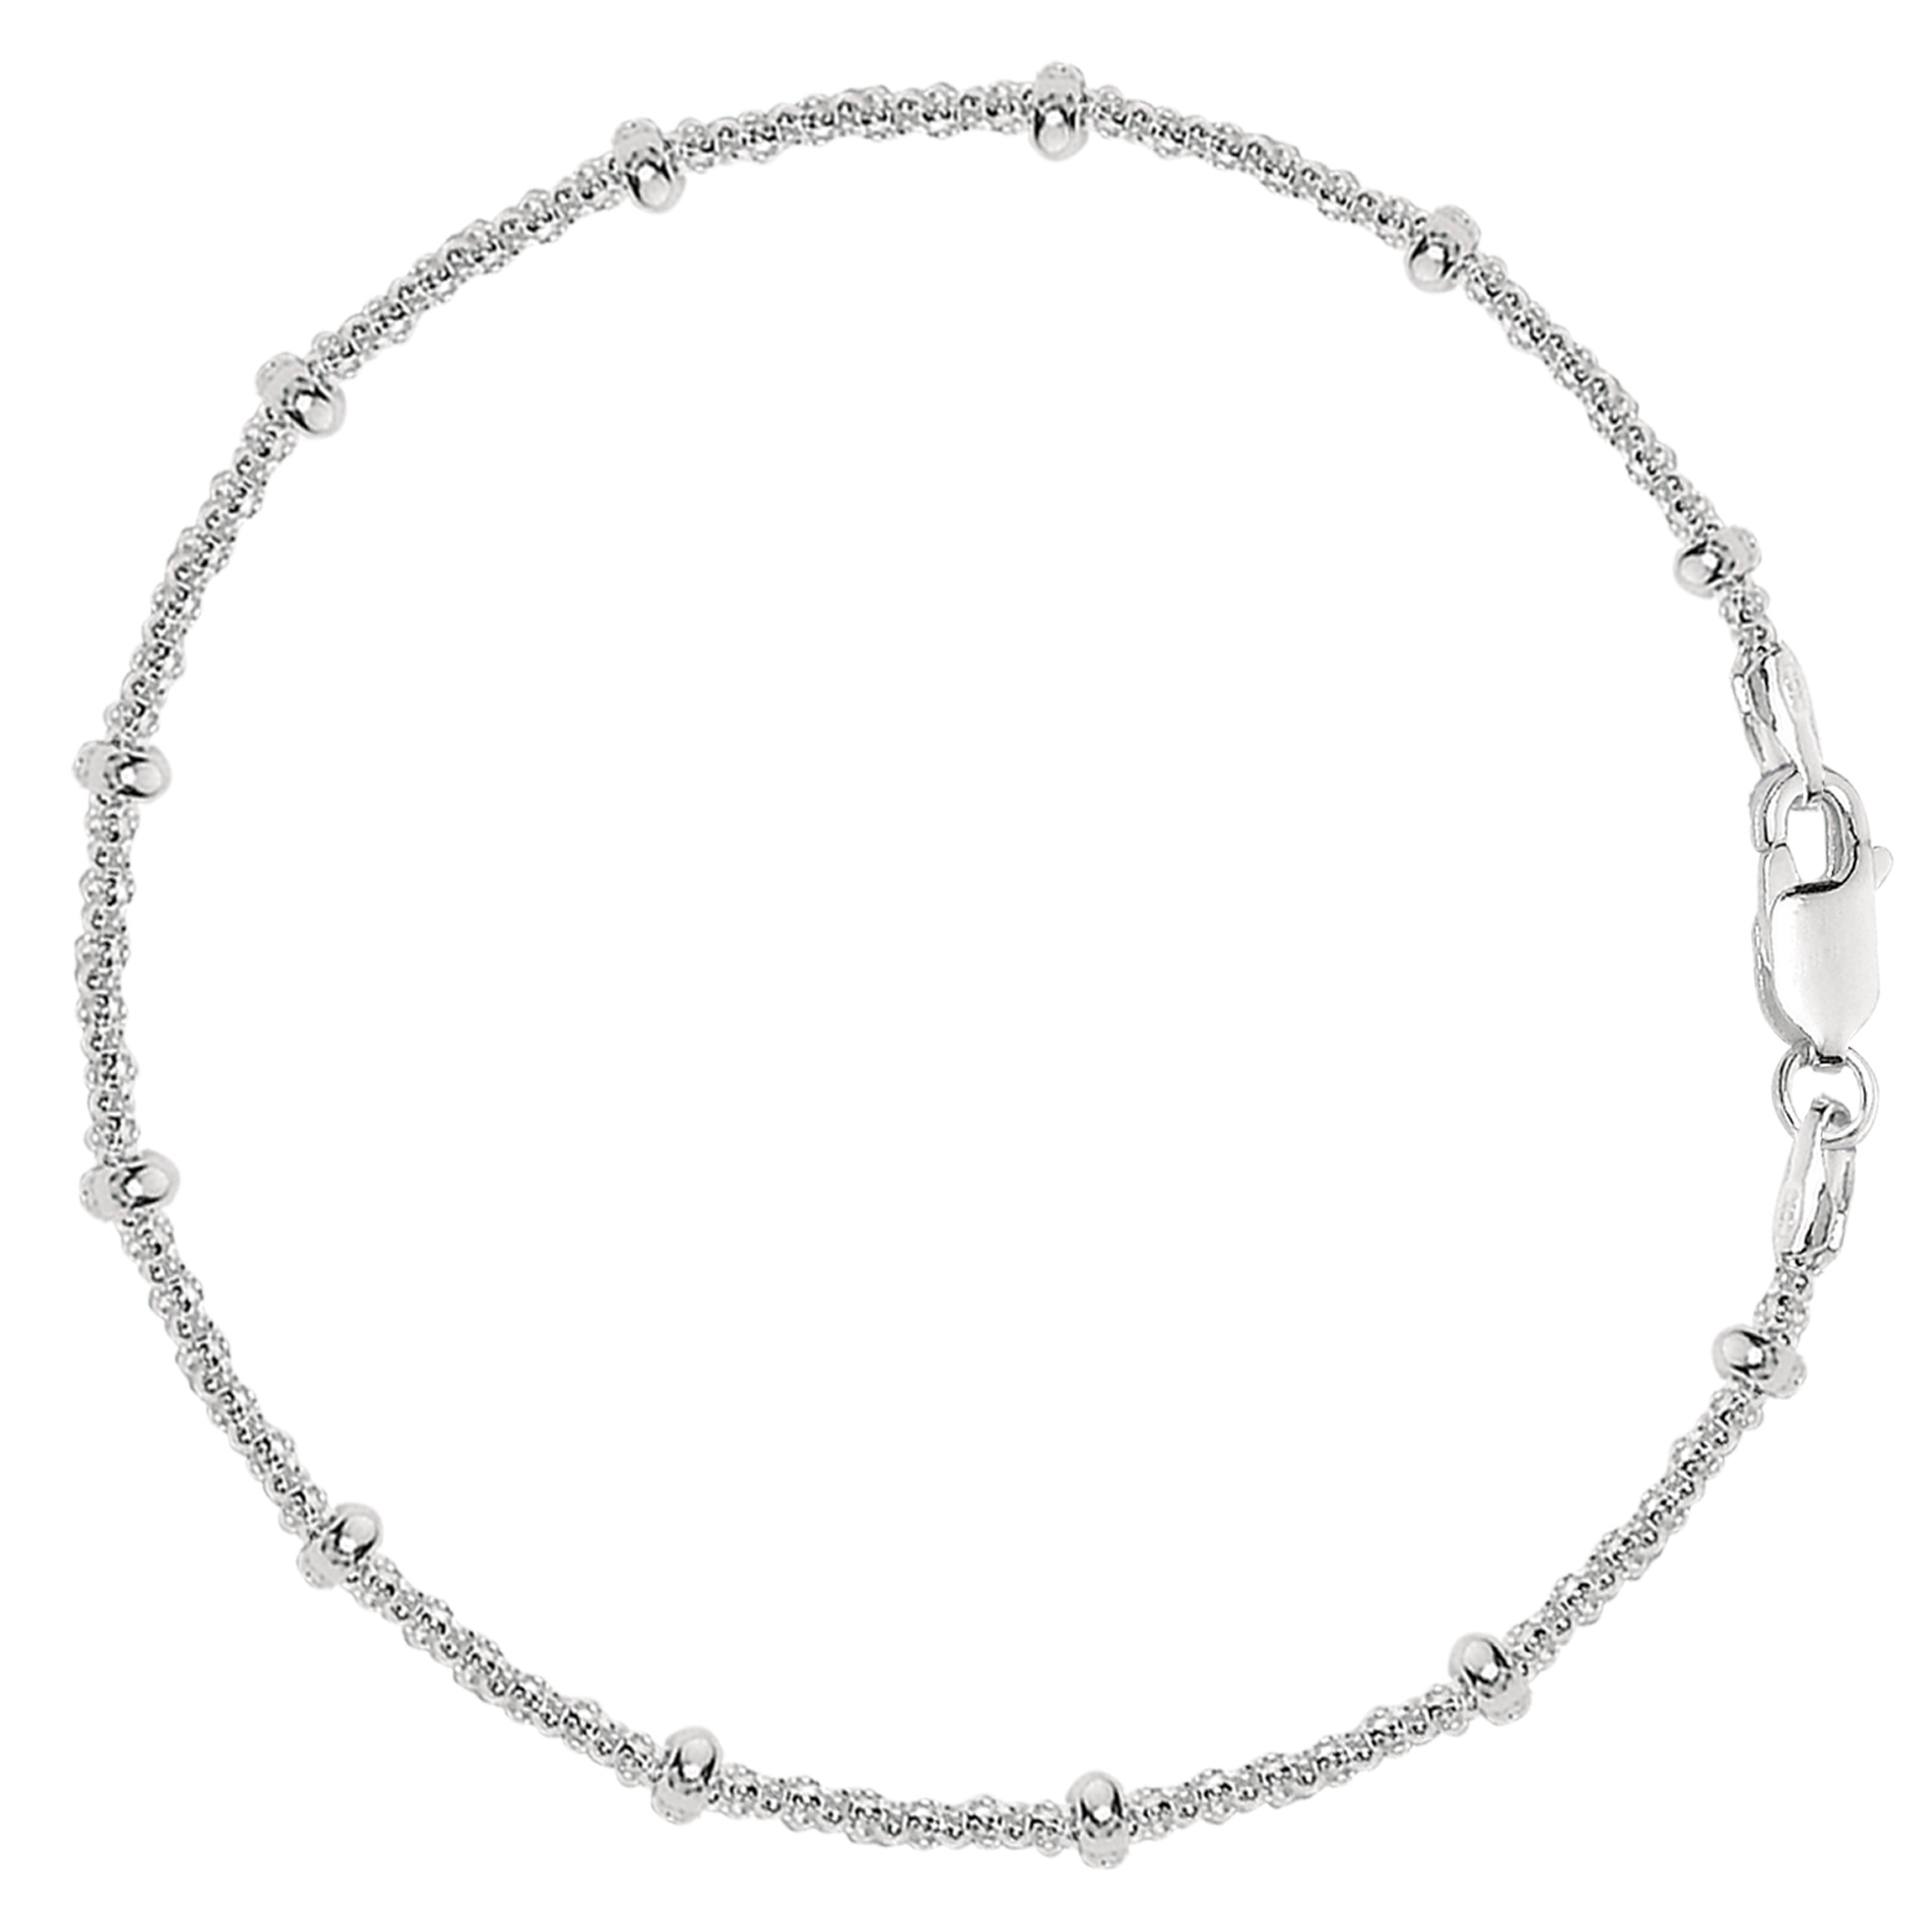 Saturn Style Chain Anklet In Sterling Silver, 10″